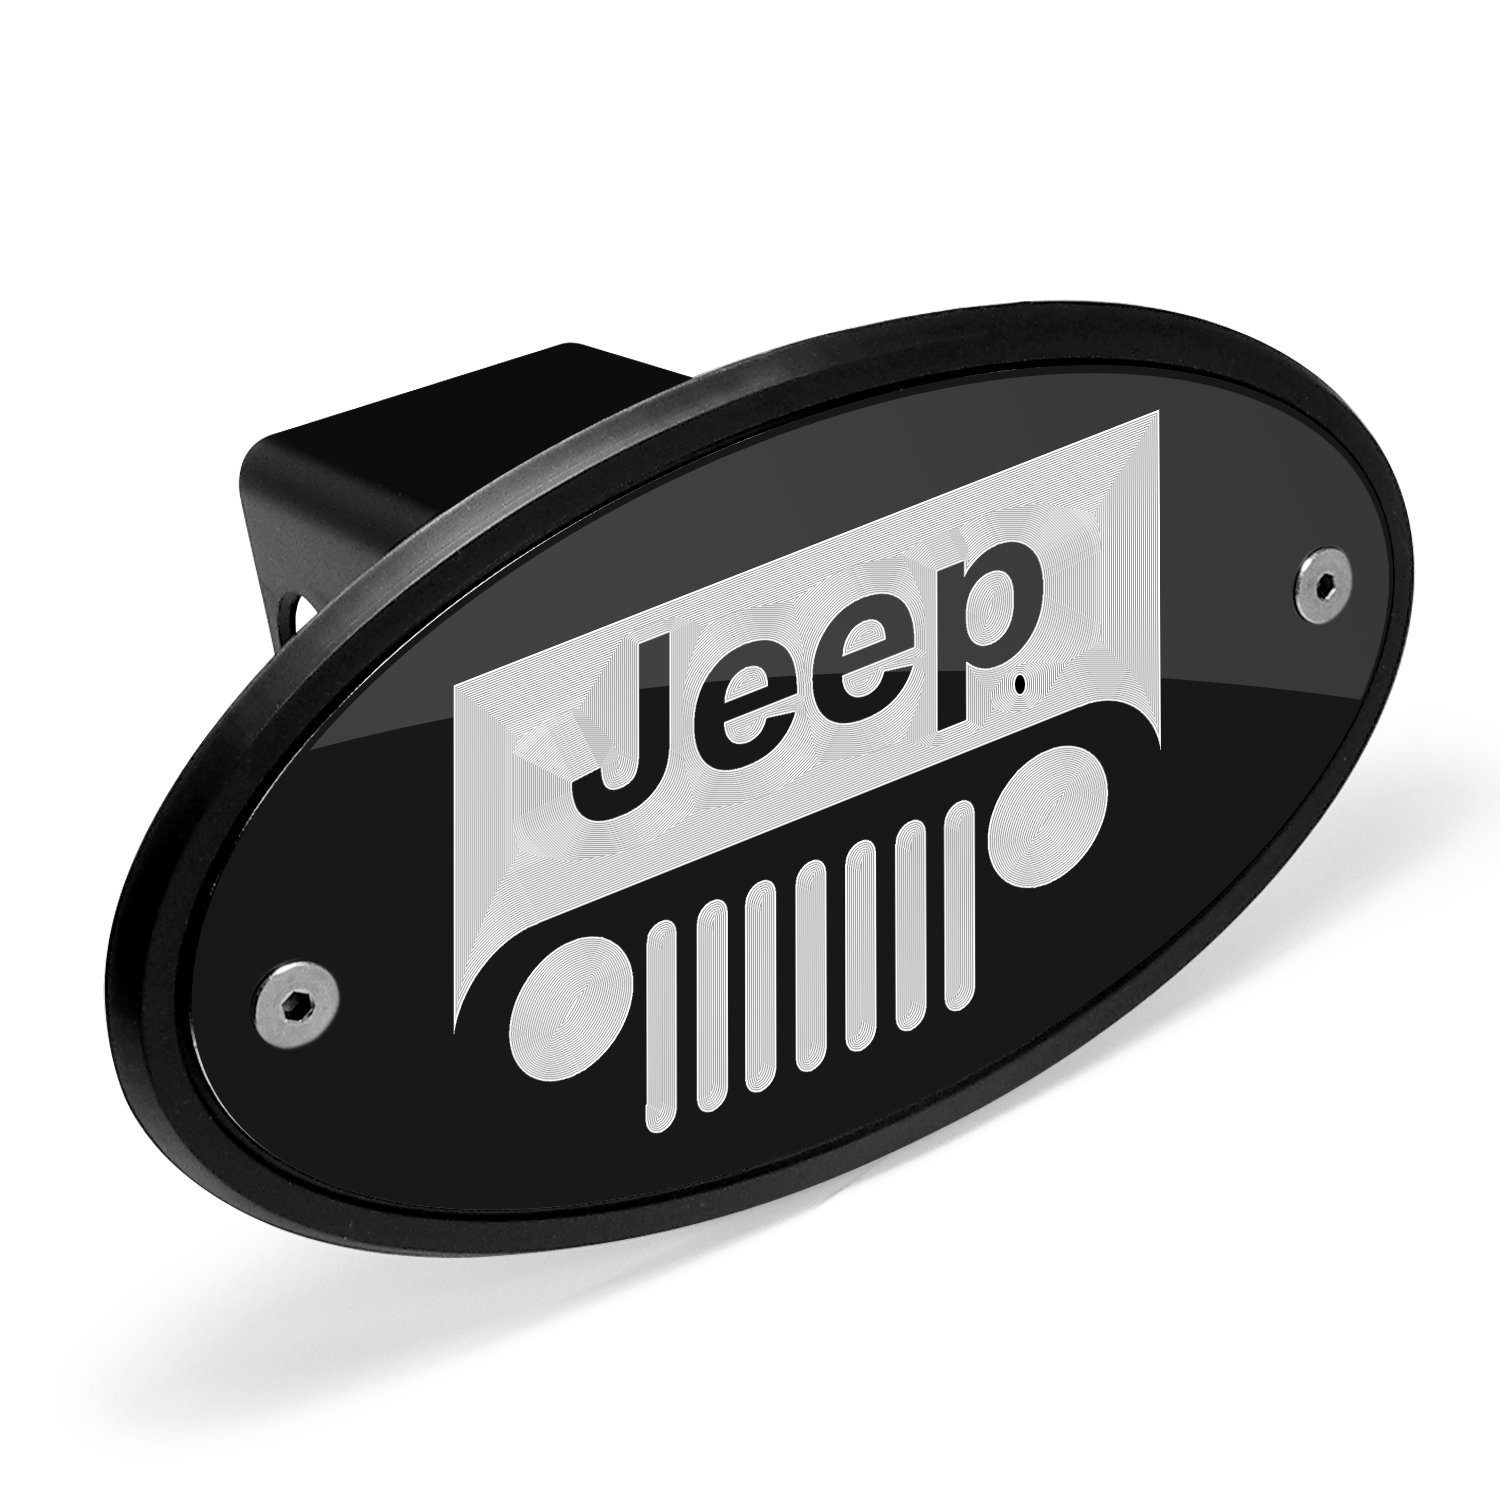 Jeep Grill Logo Black Metal Plate 2 inch Tow Hitch Cover by Jeep